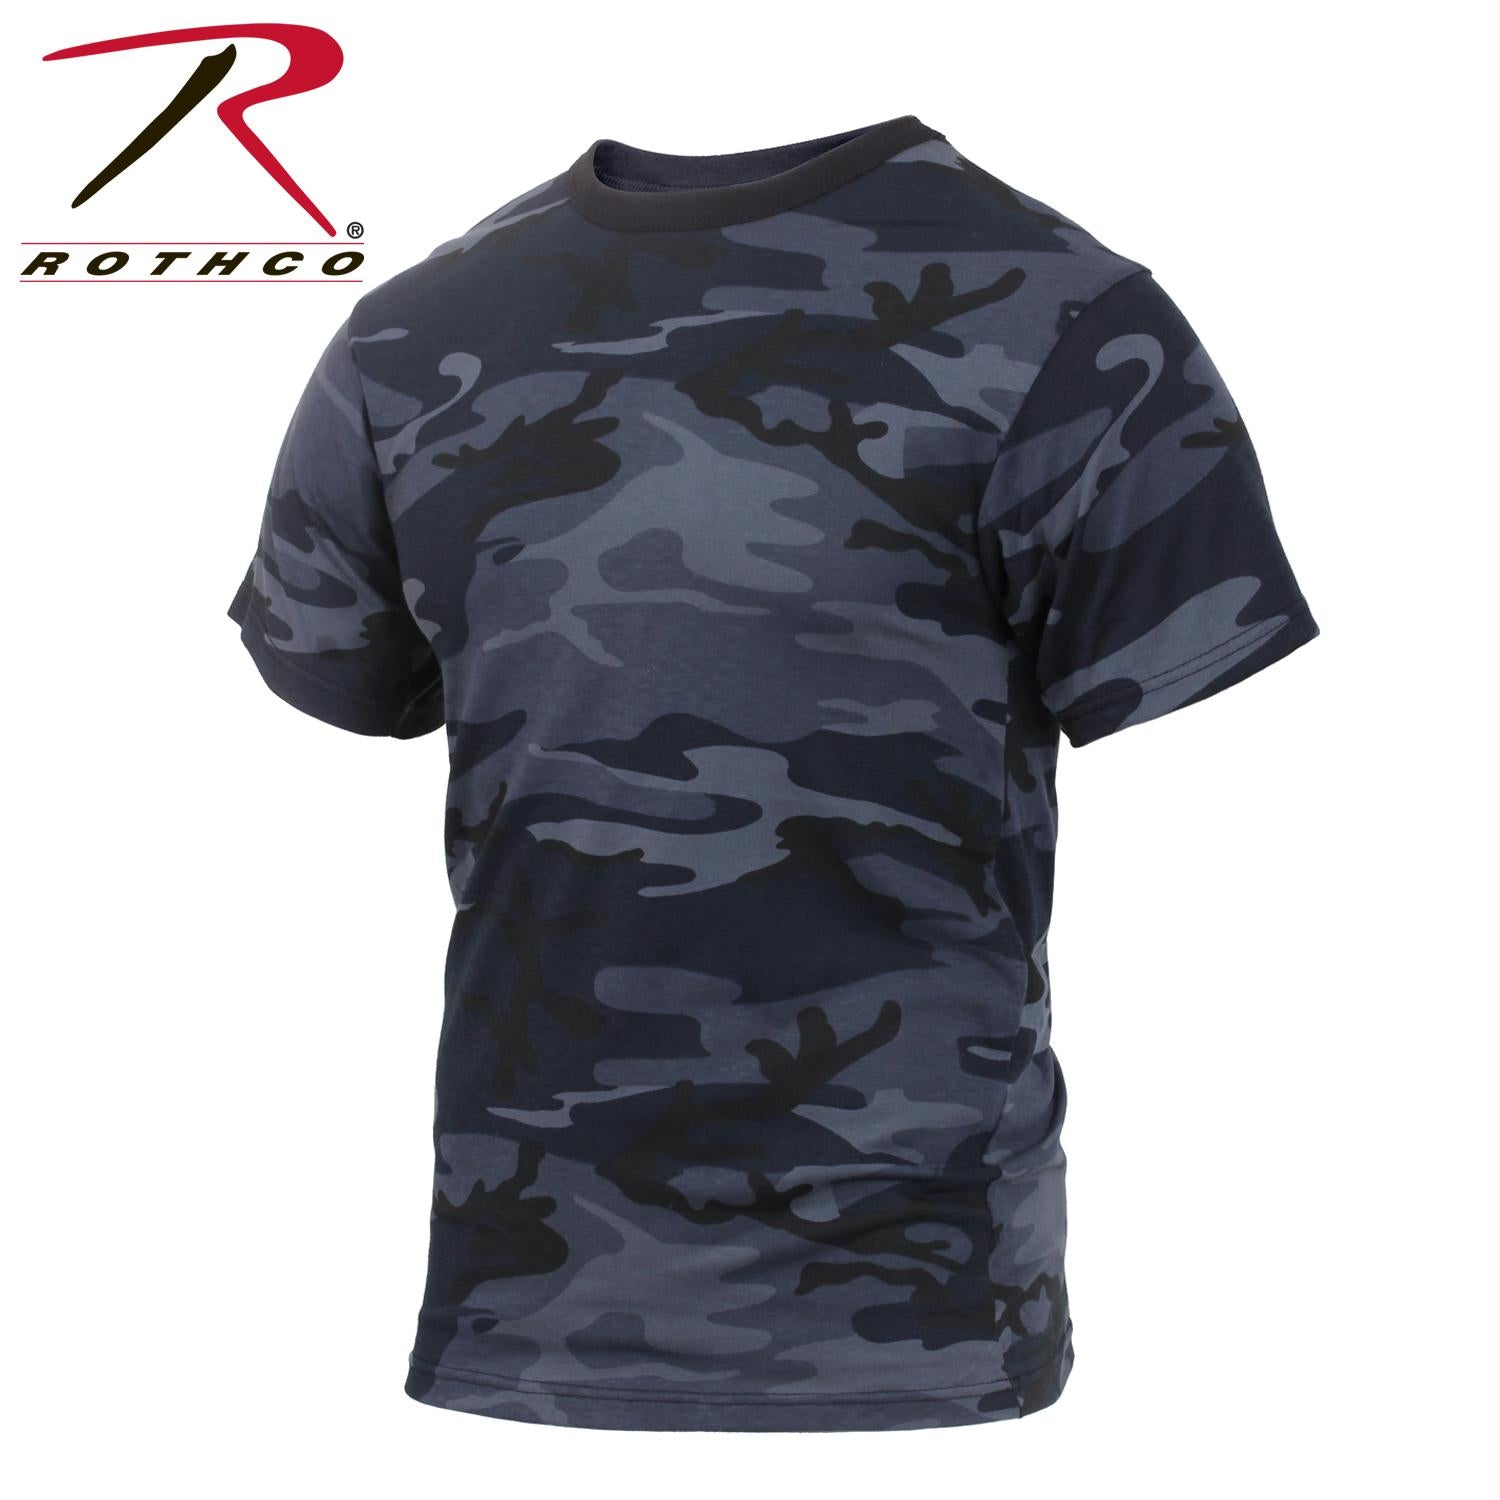 Rothco Colored Camo T-Shirts - Midnight Blue Camo / XL